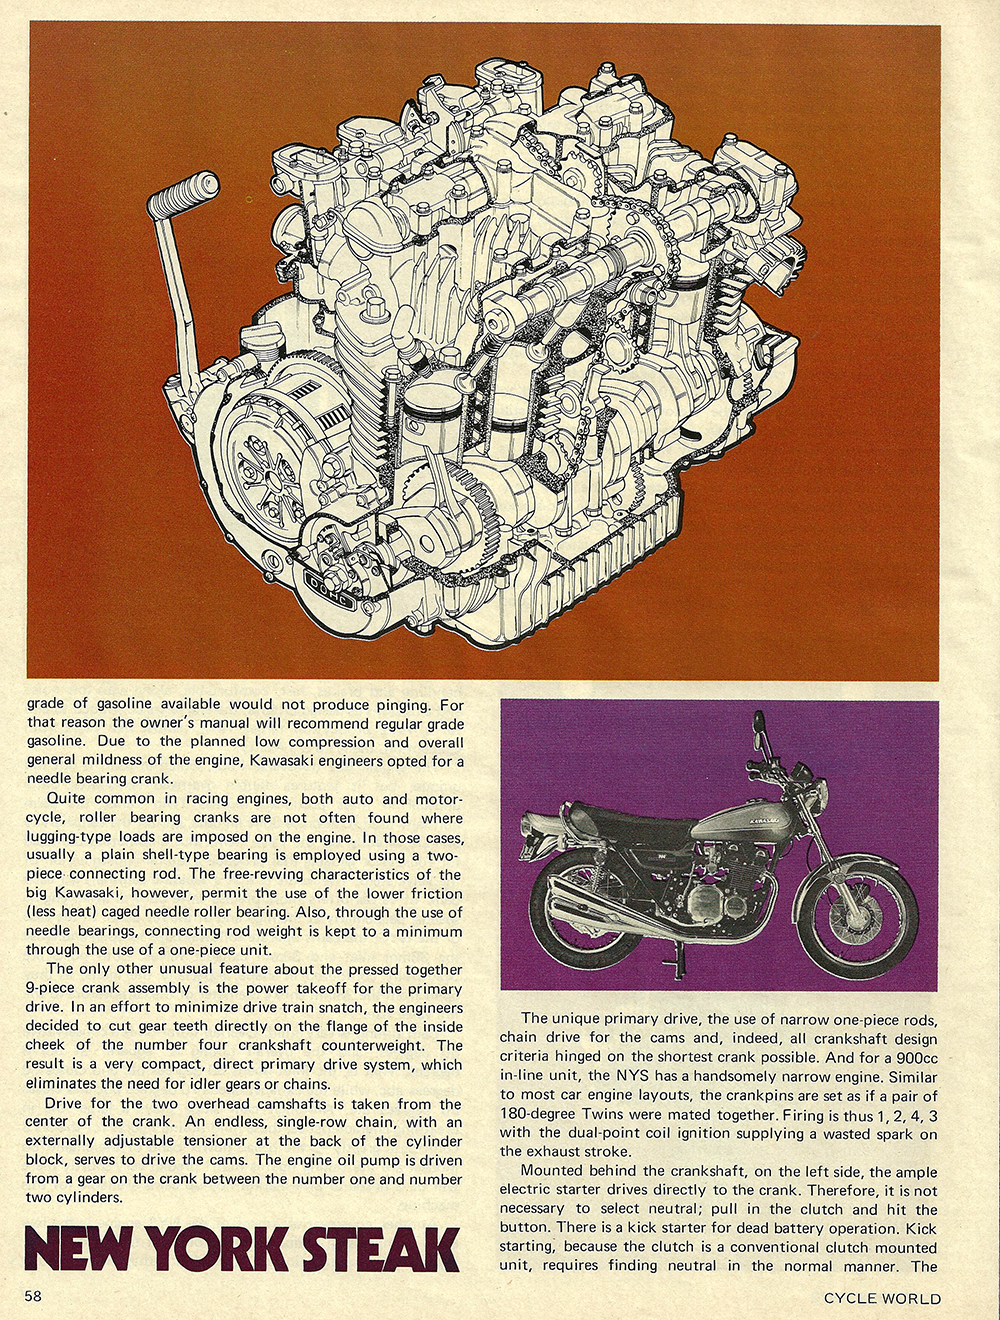 1972 Kawasaki Z1 900 New York Steak road test 03.jpg